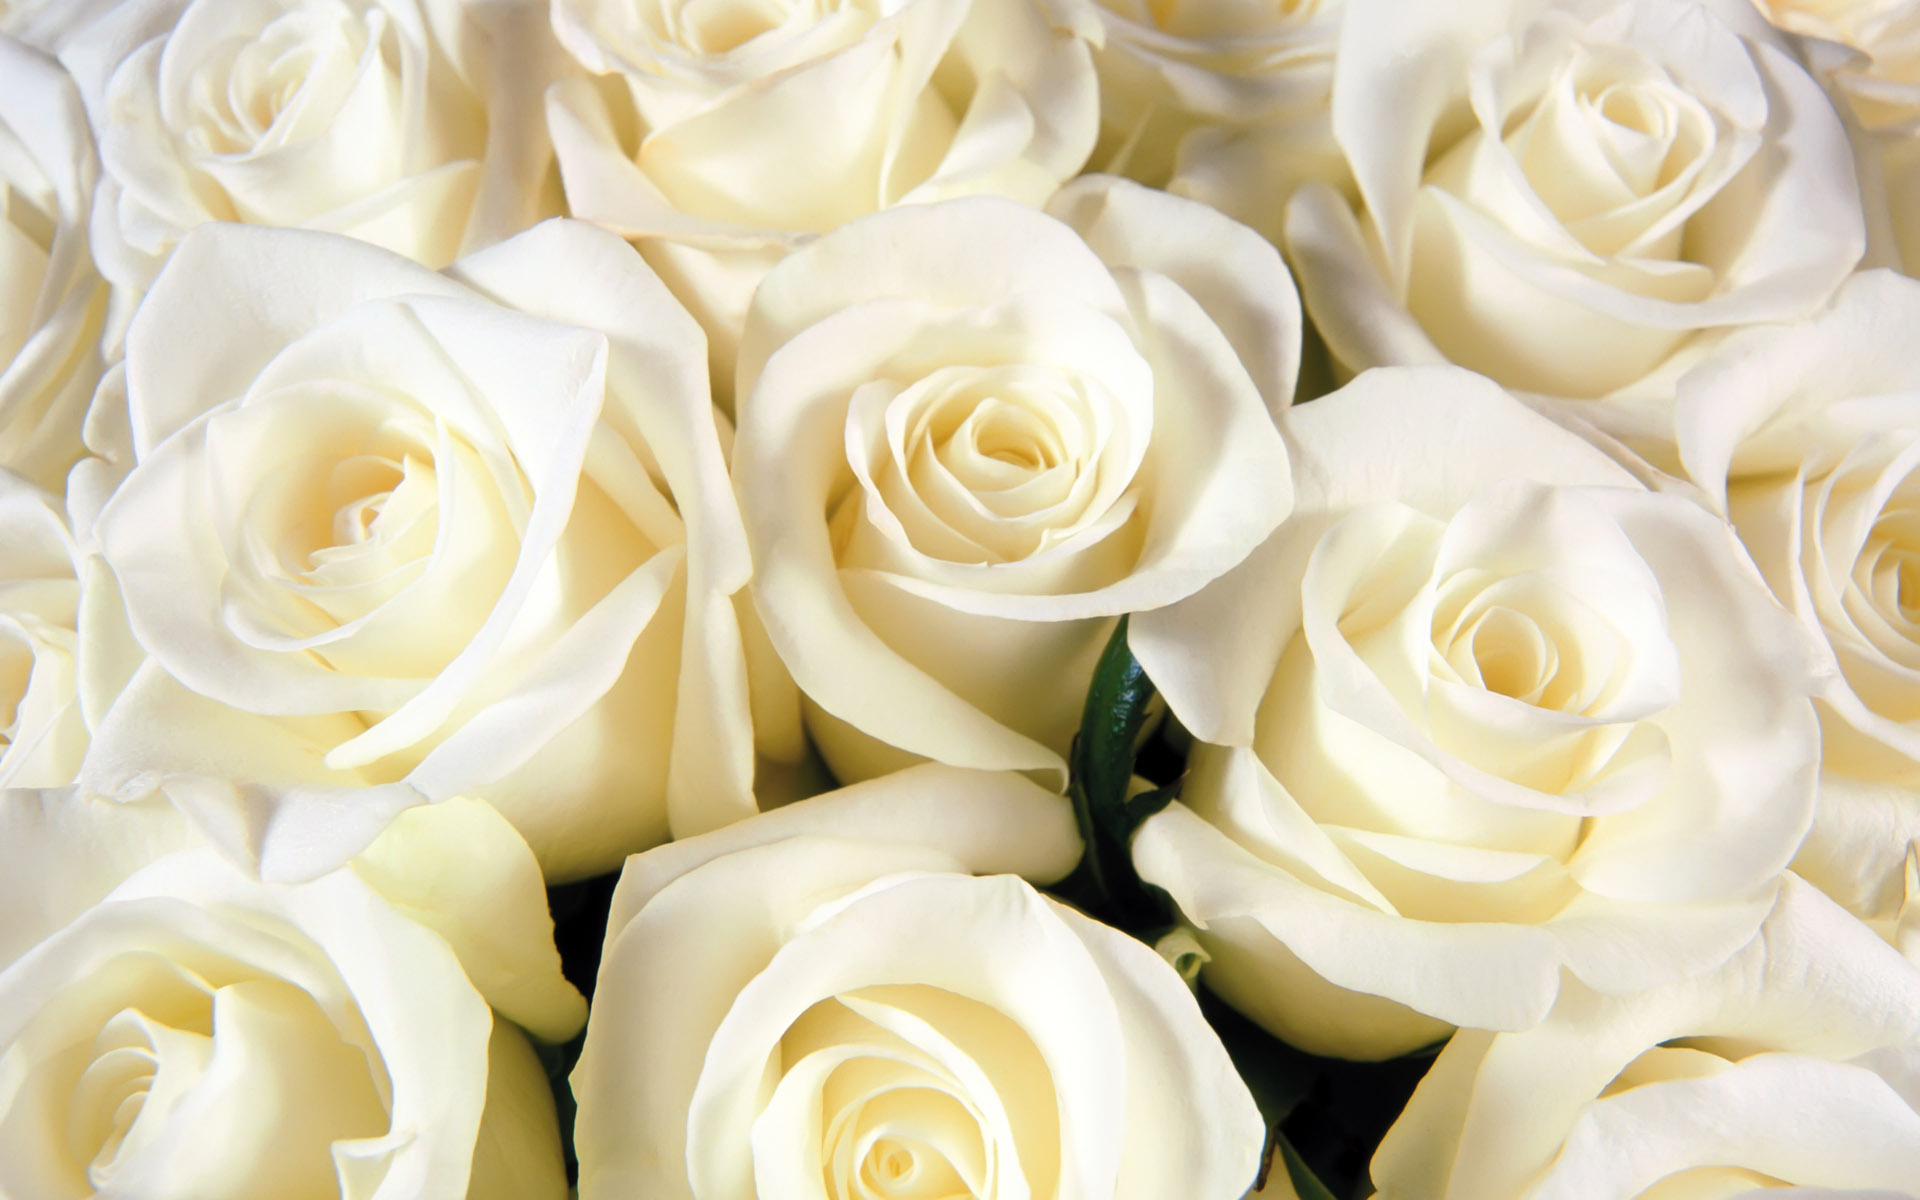 White Roses Tumblr Header